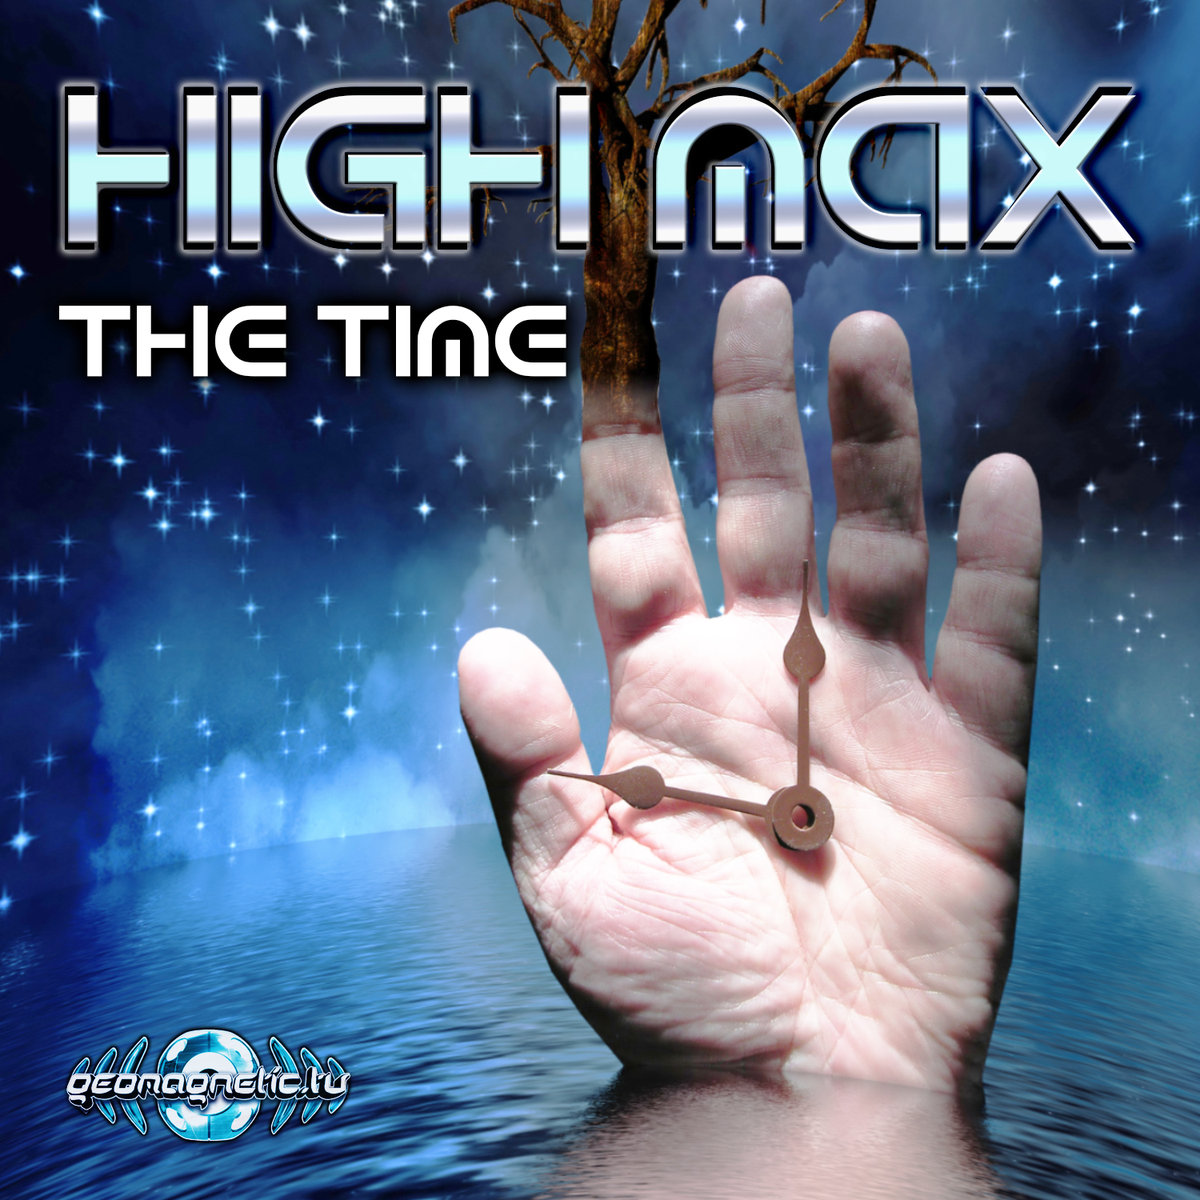 High Max - The Time (artwork)